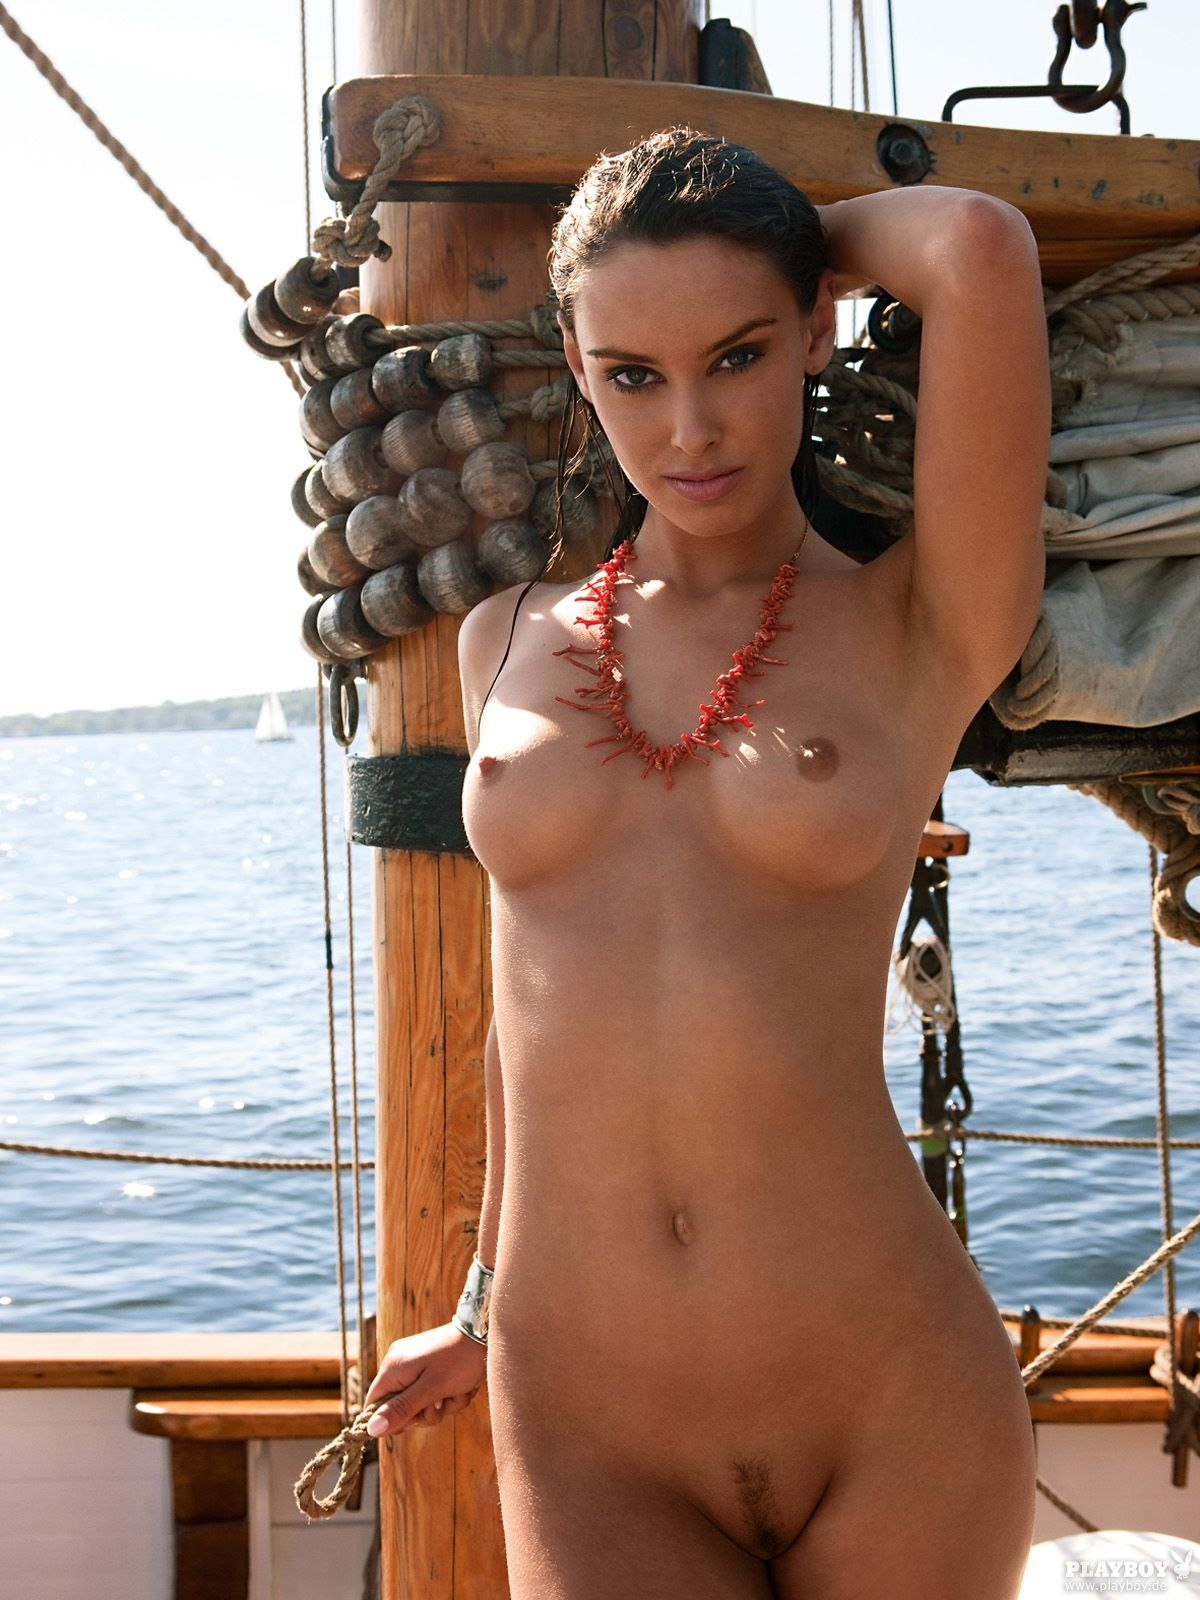 Playboy pirate porn video nude picture